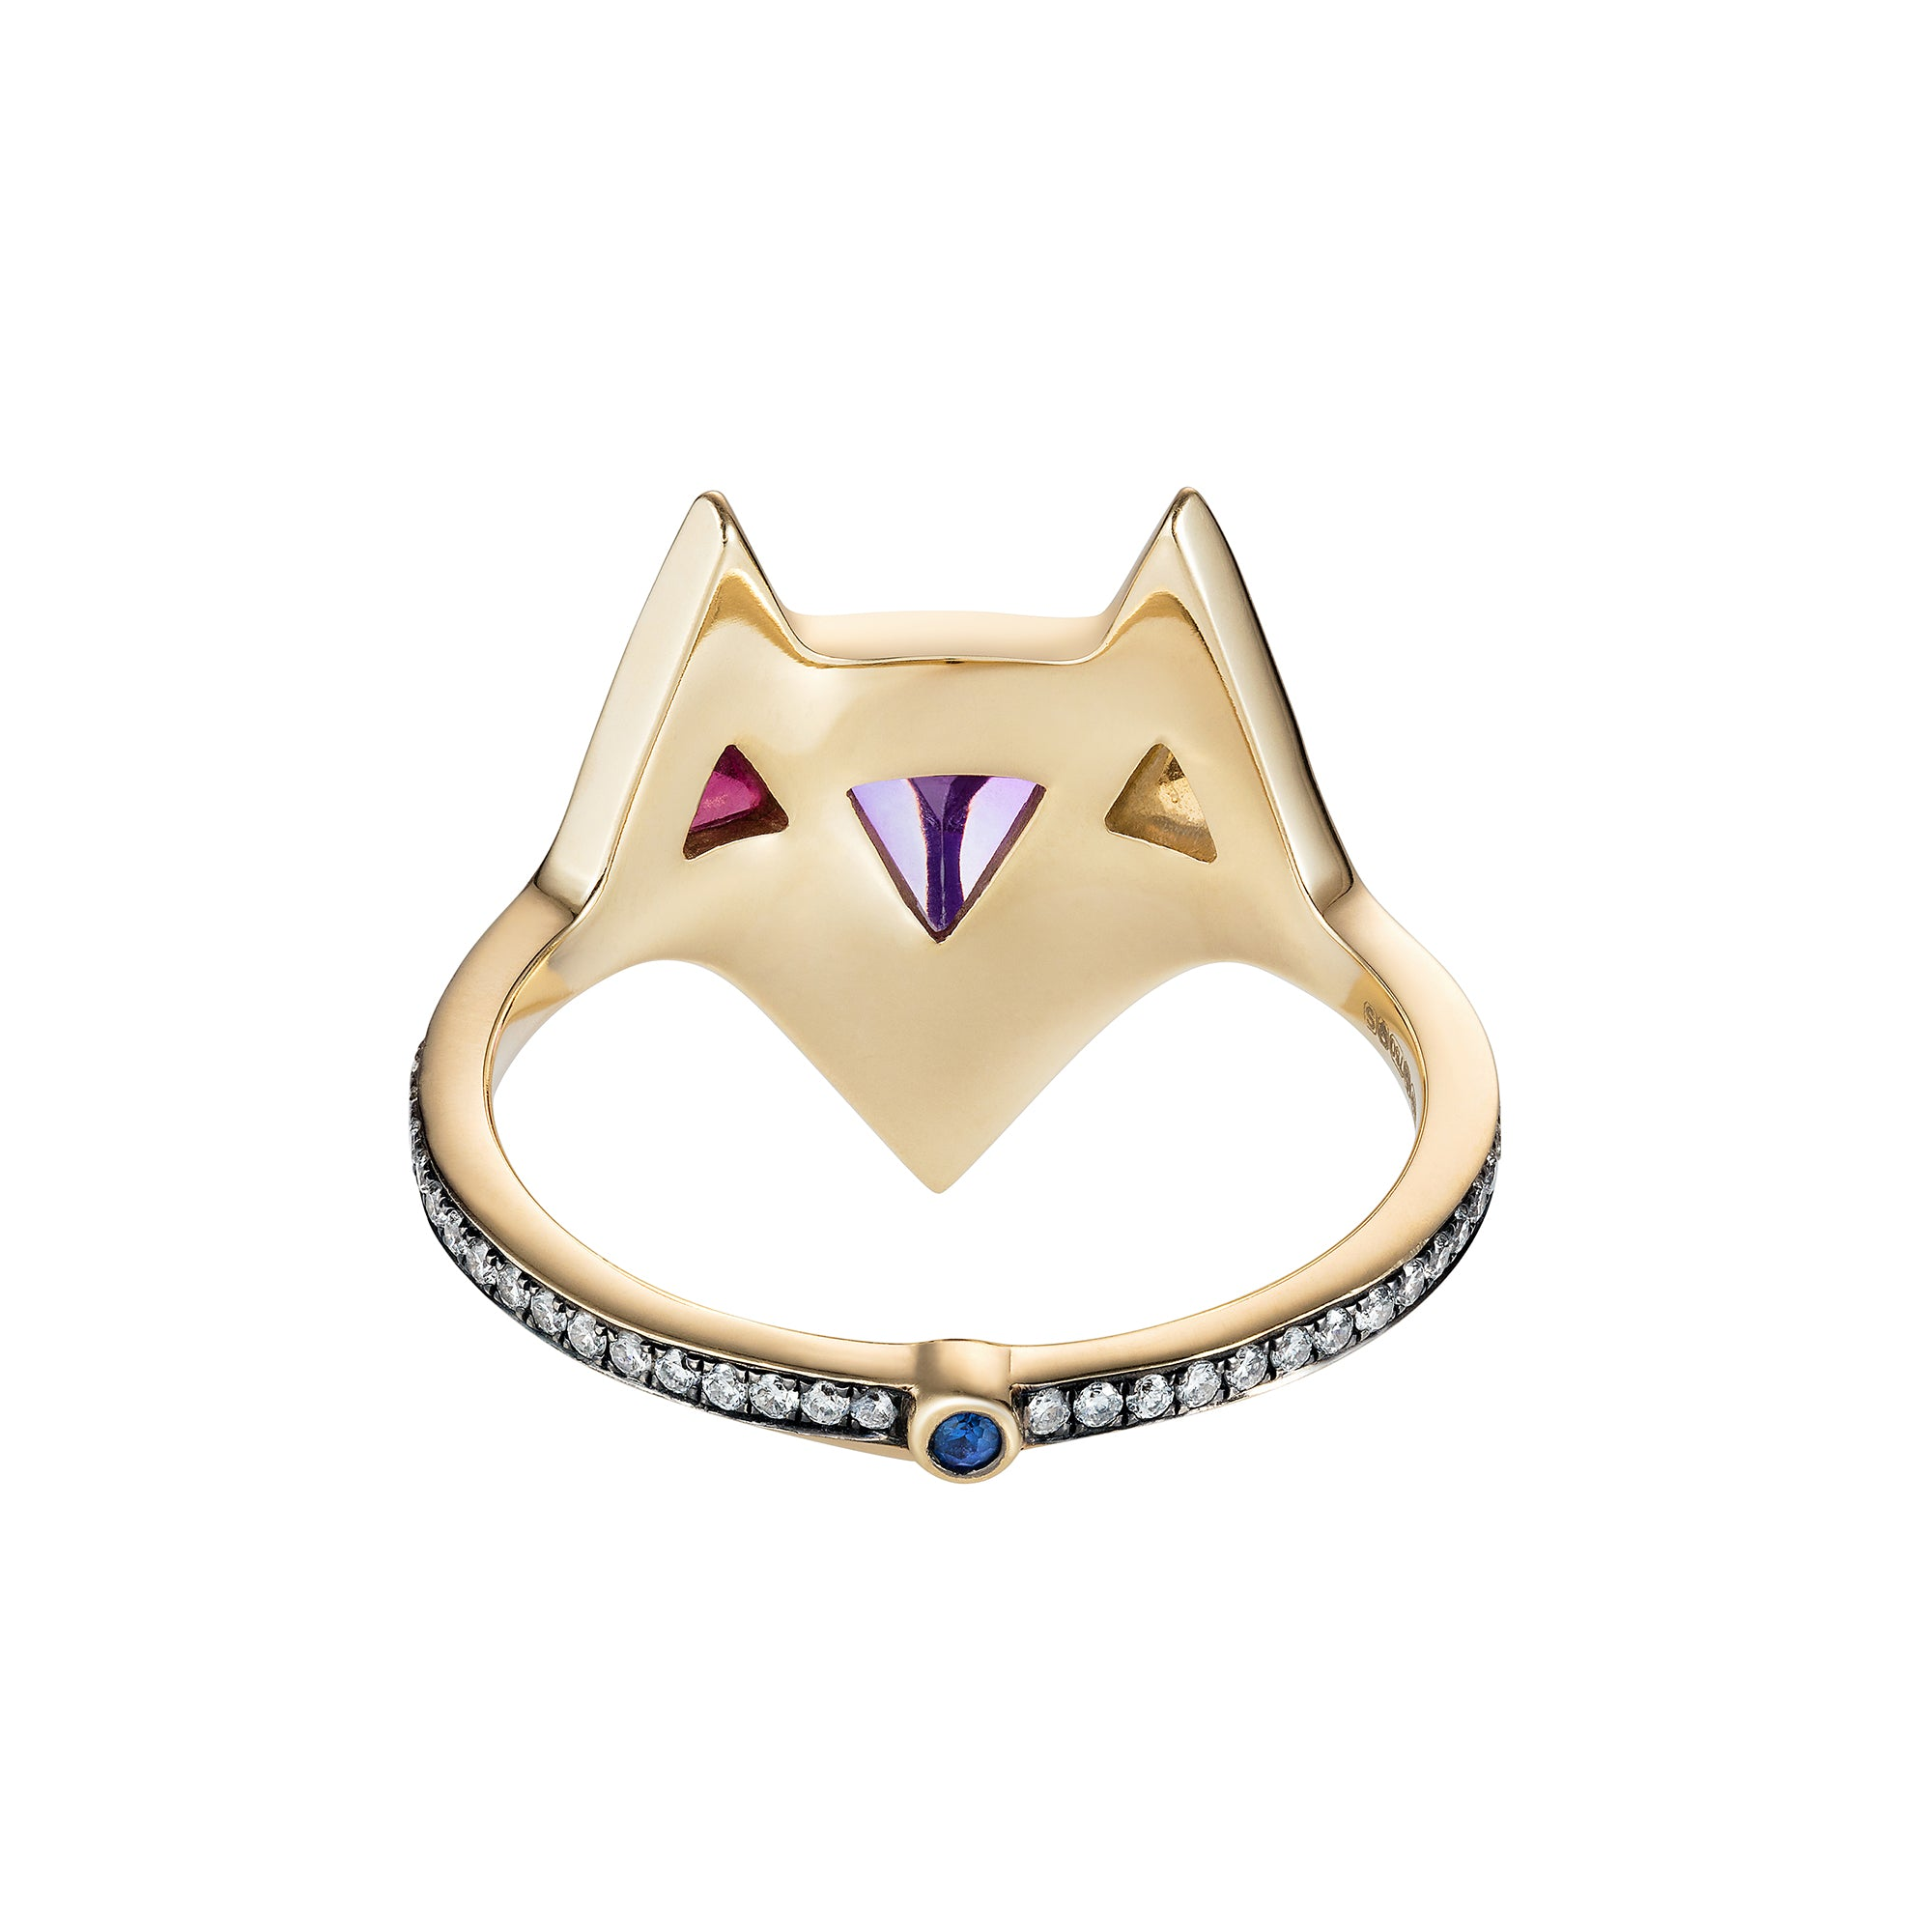 Multi Colored Hava Ring by Noor Fares for Broken English Jewelry